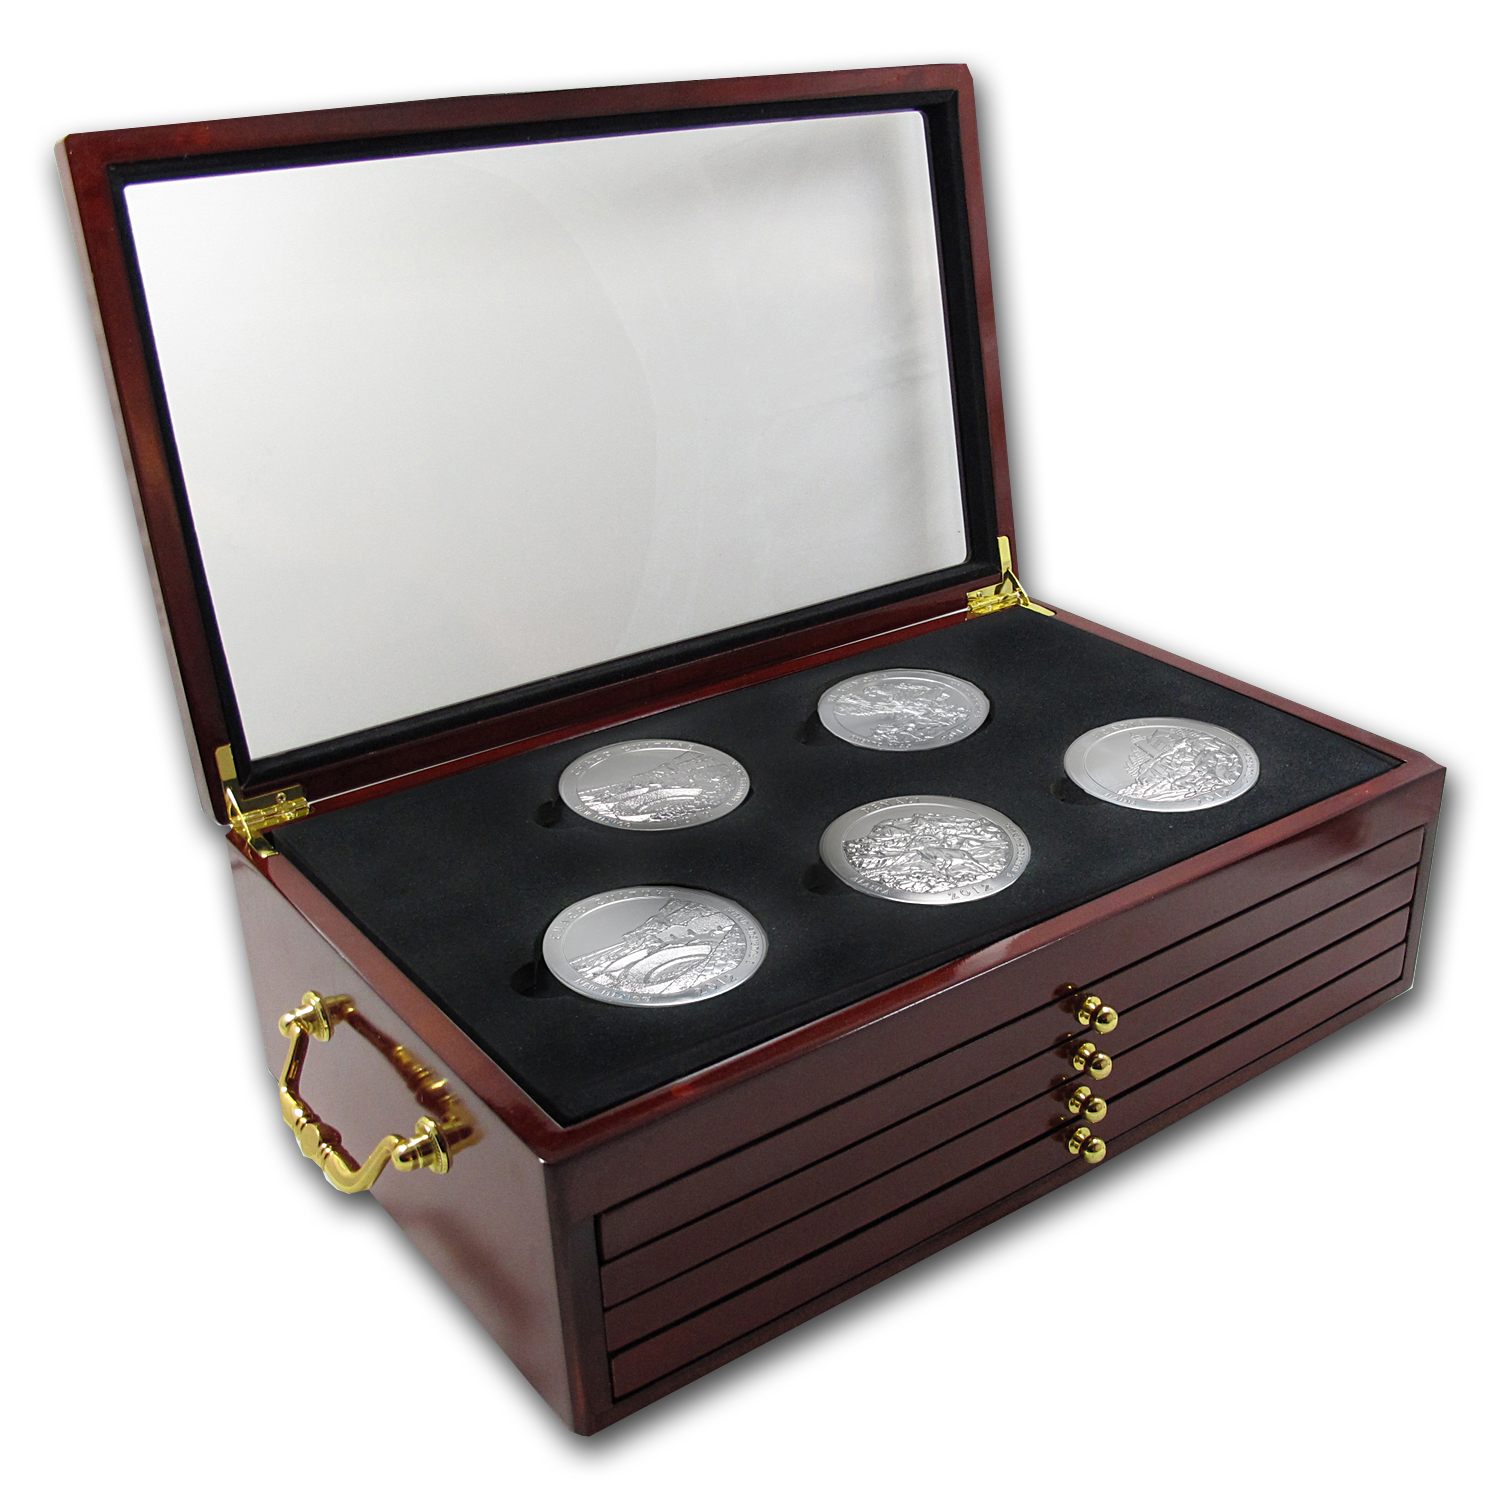 2010-2012 15-Coin 5 oz Silver ATB Set (Elegant Display Box)